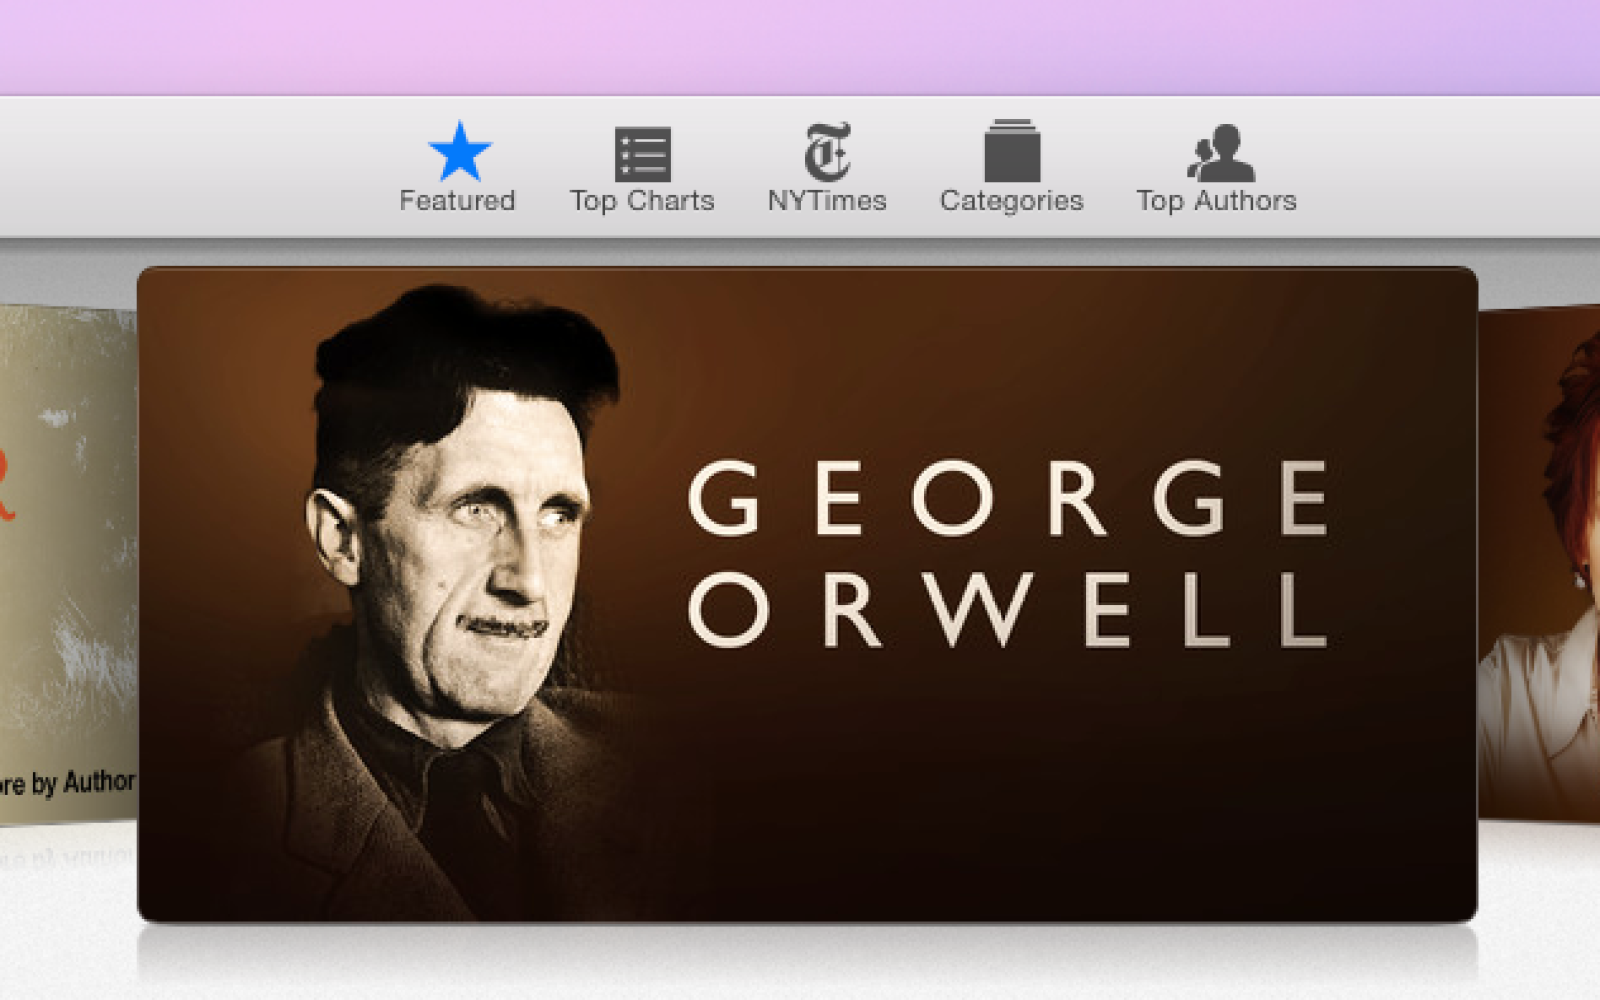 iBooks Store promoting George Orwell after Amazon incorrectly cites author in ebooks dispute